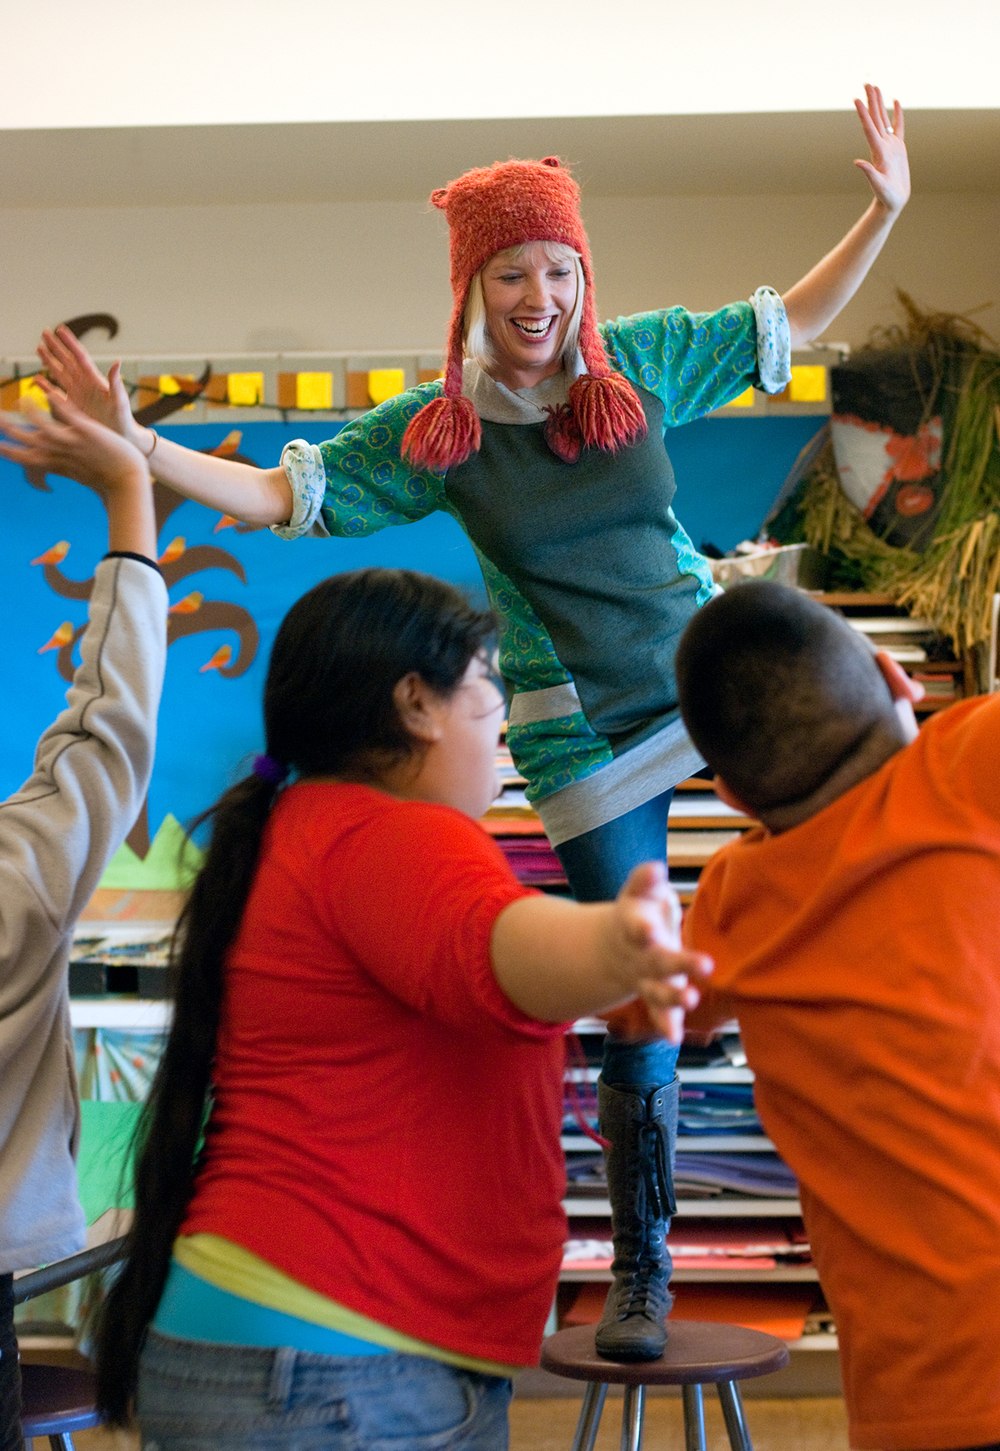 Art teacher engages students, Arts Corps